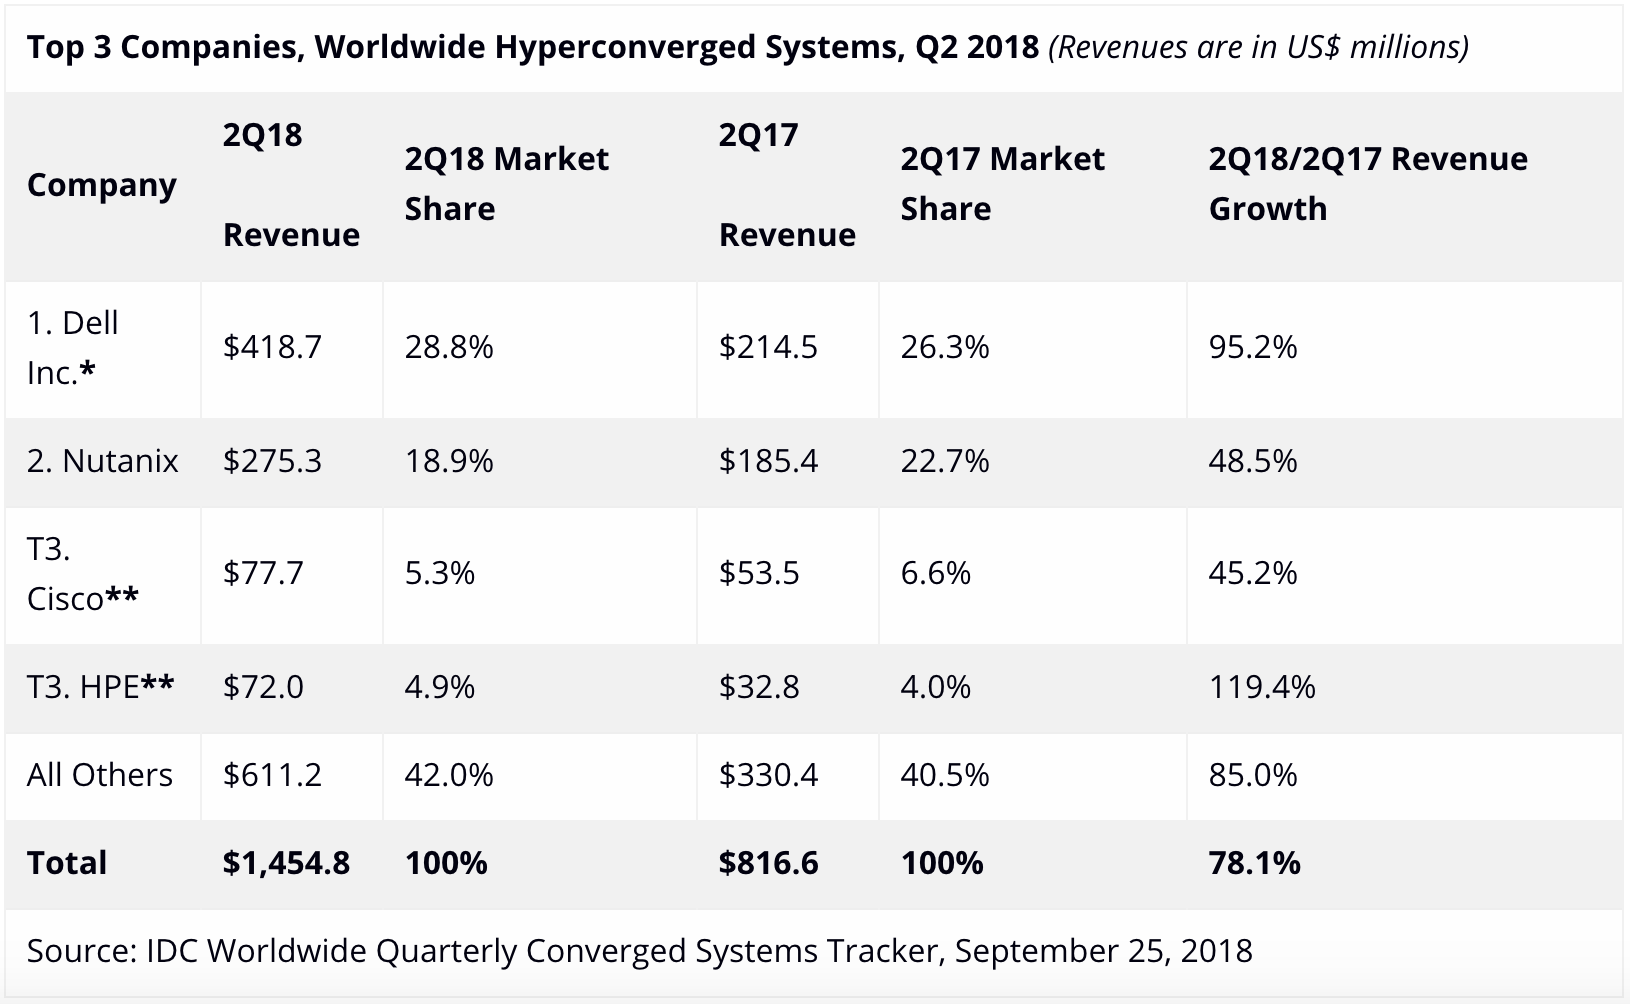 **Top 3 Companies, Worldwide Hyperconverged Systems, Q2 2018** *(Revenues are in US$ millions)*